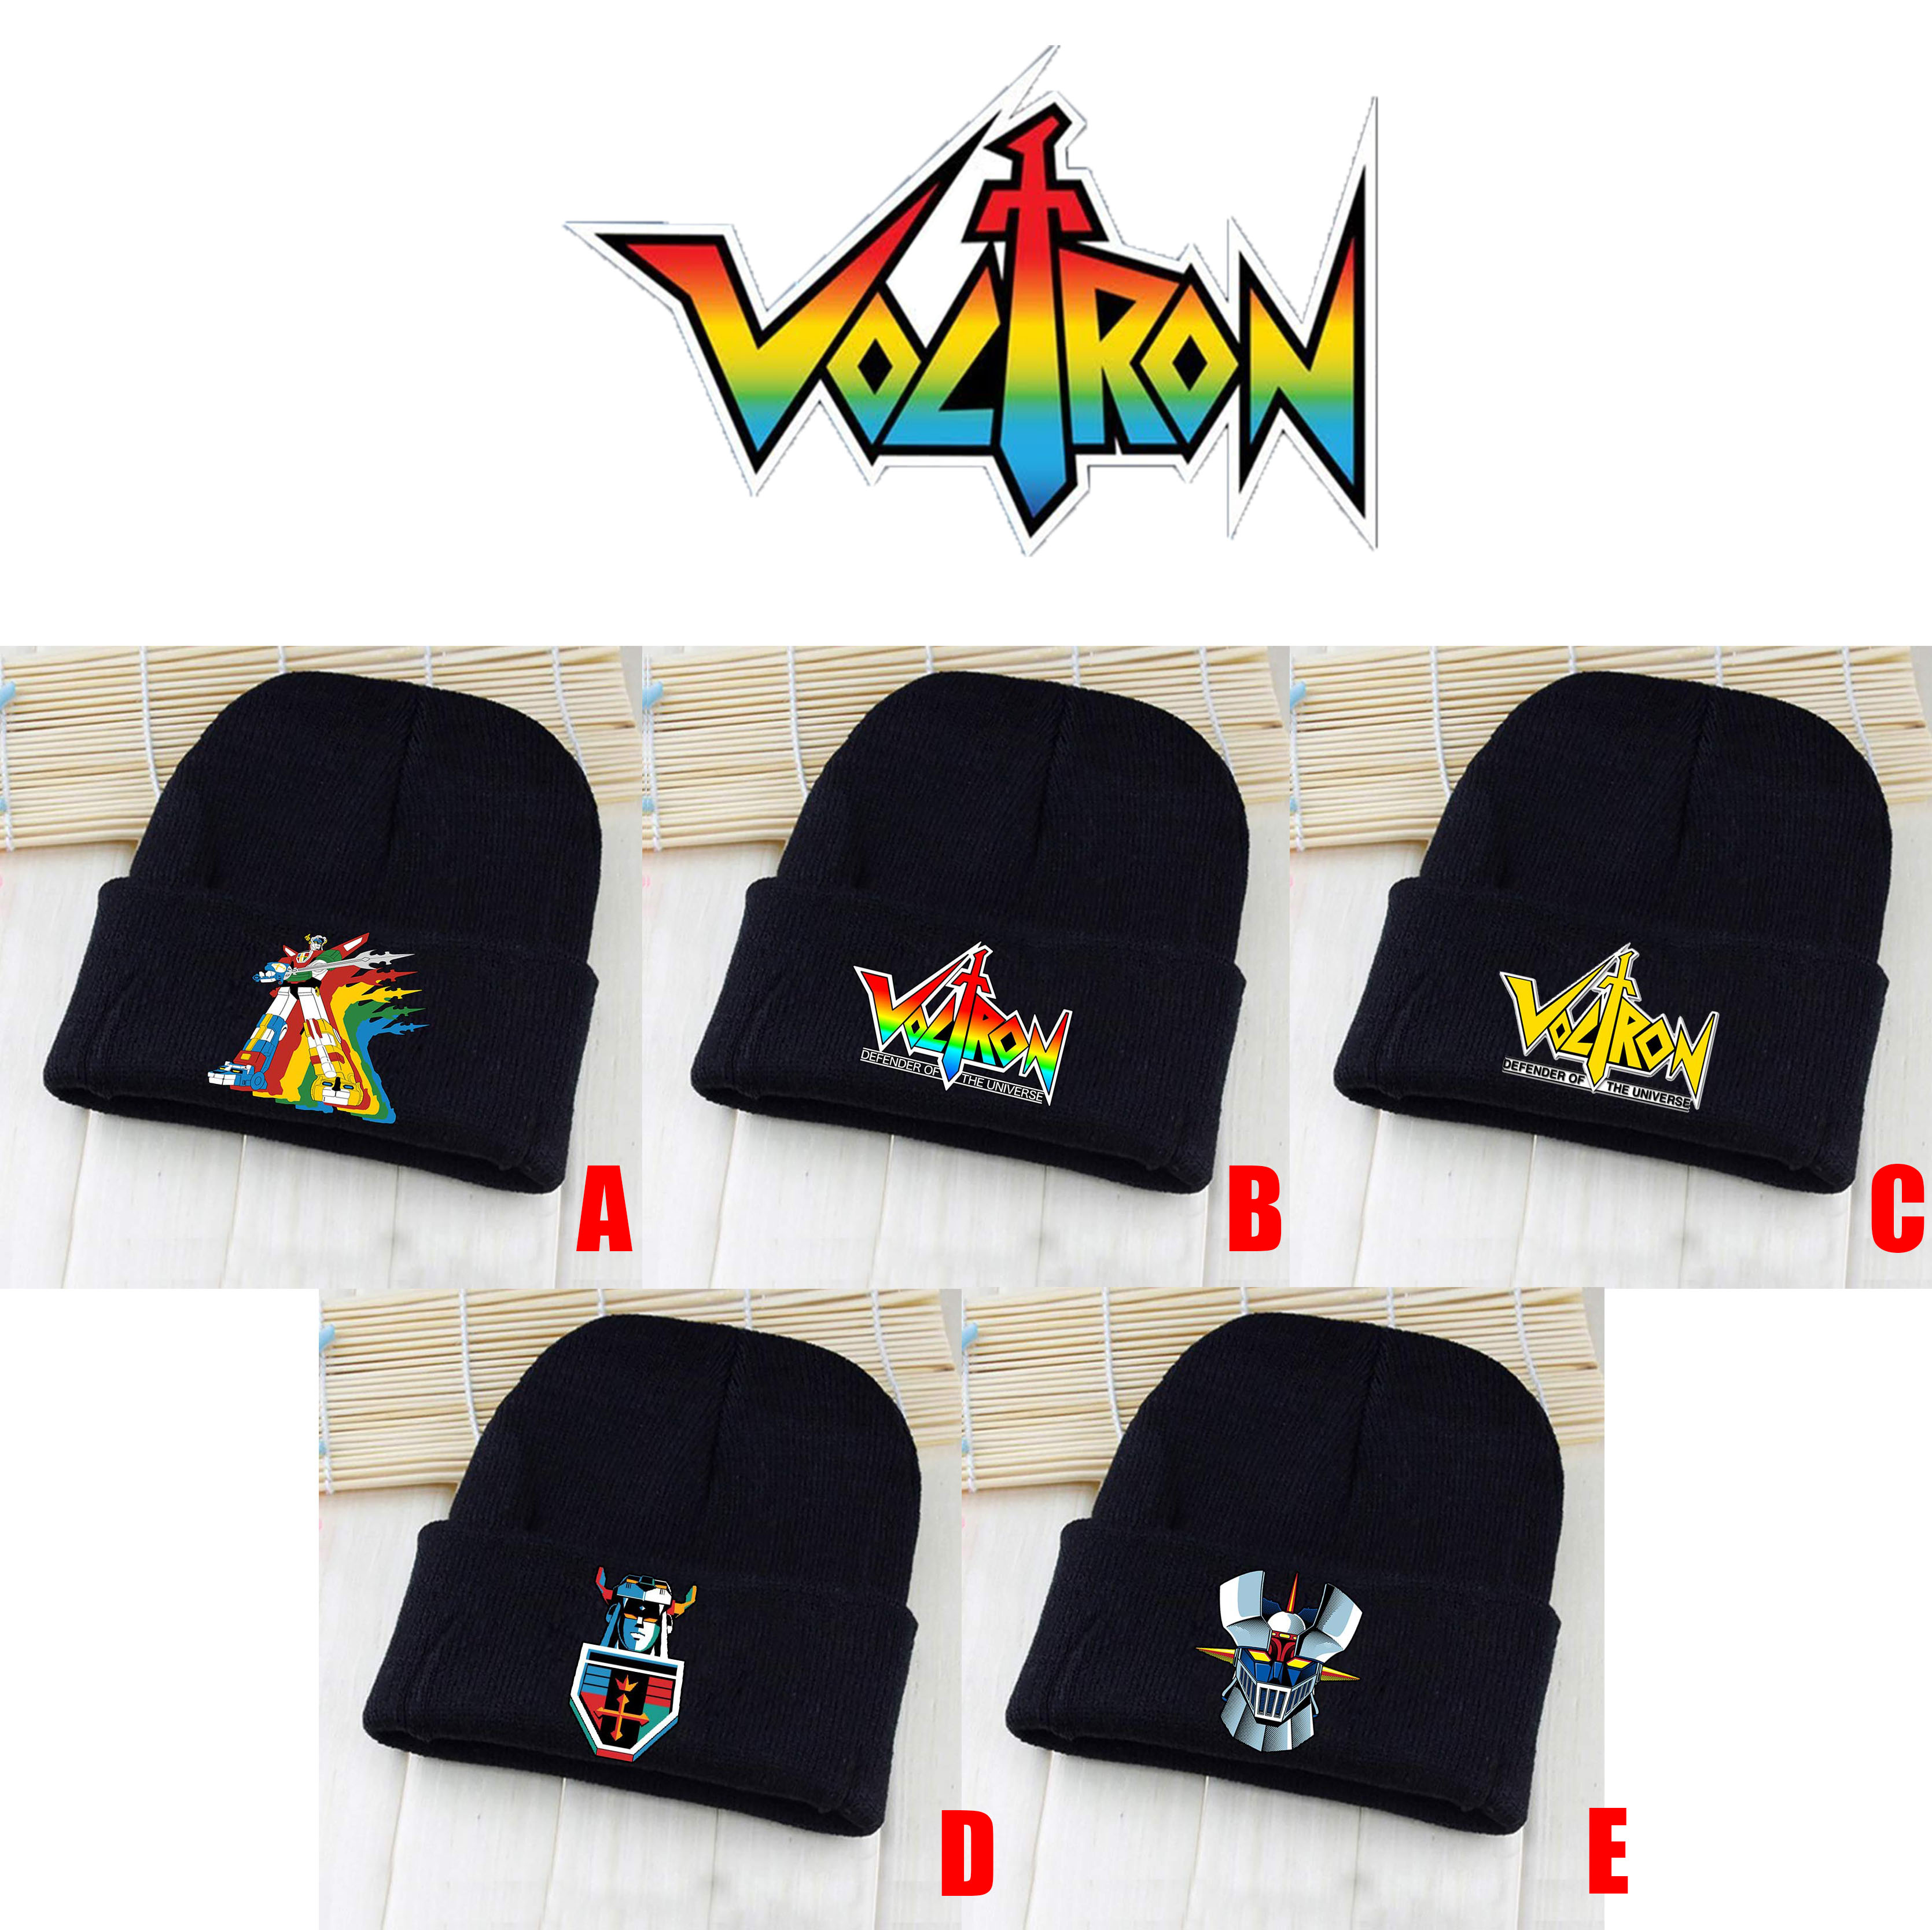 Anime Voltron: Legendary Defender Black Skullies Beanie Knitted Cotton Hat Cap Cosplay Costume Unisex Fashion Gifts Cool